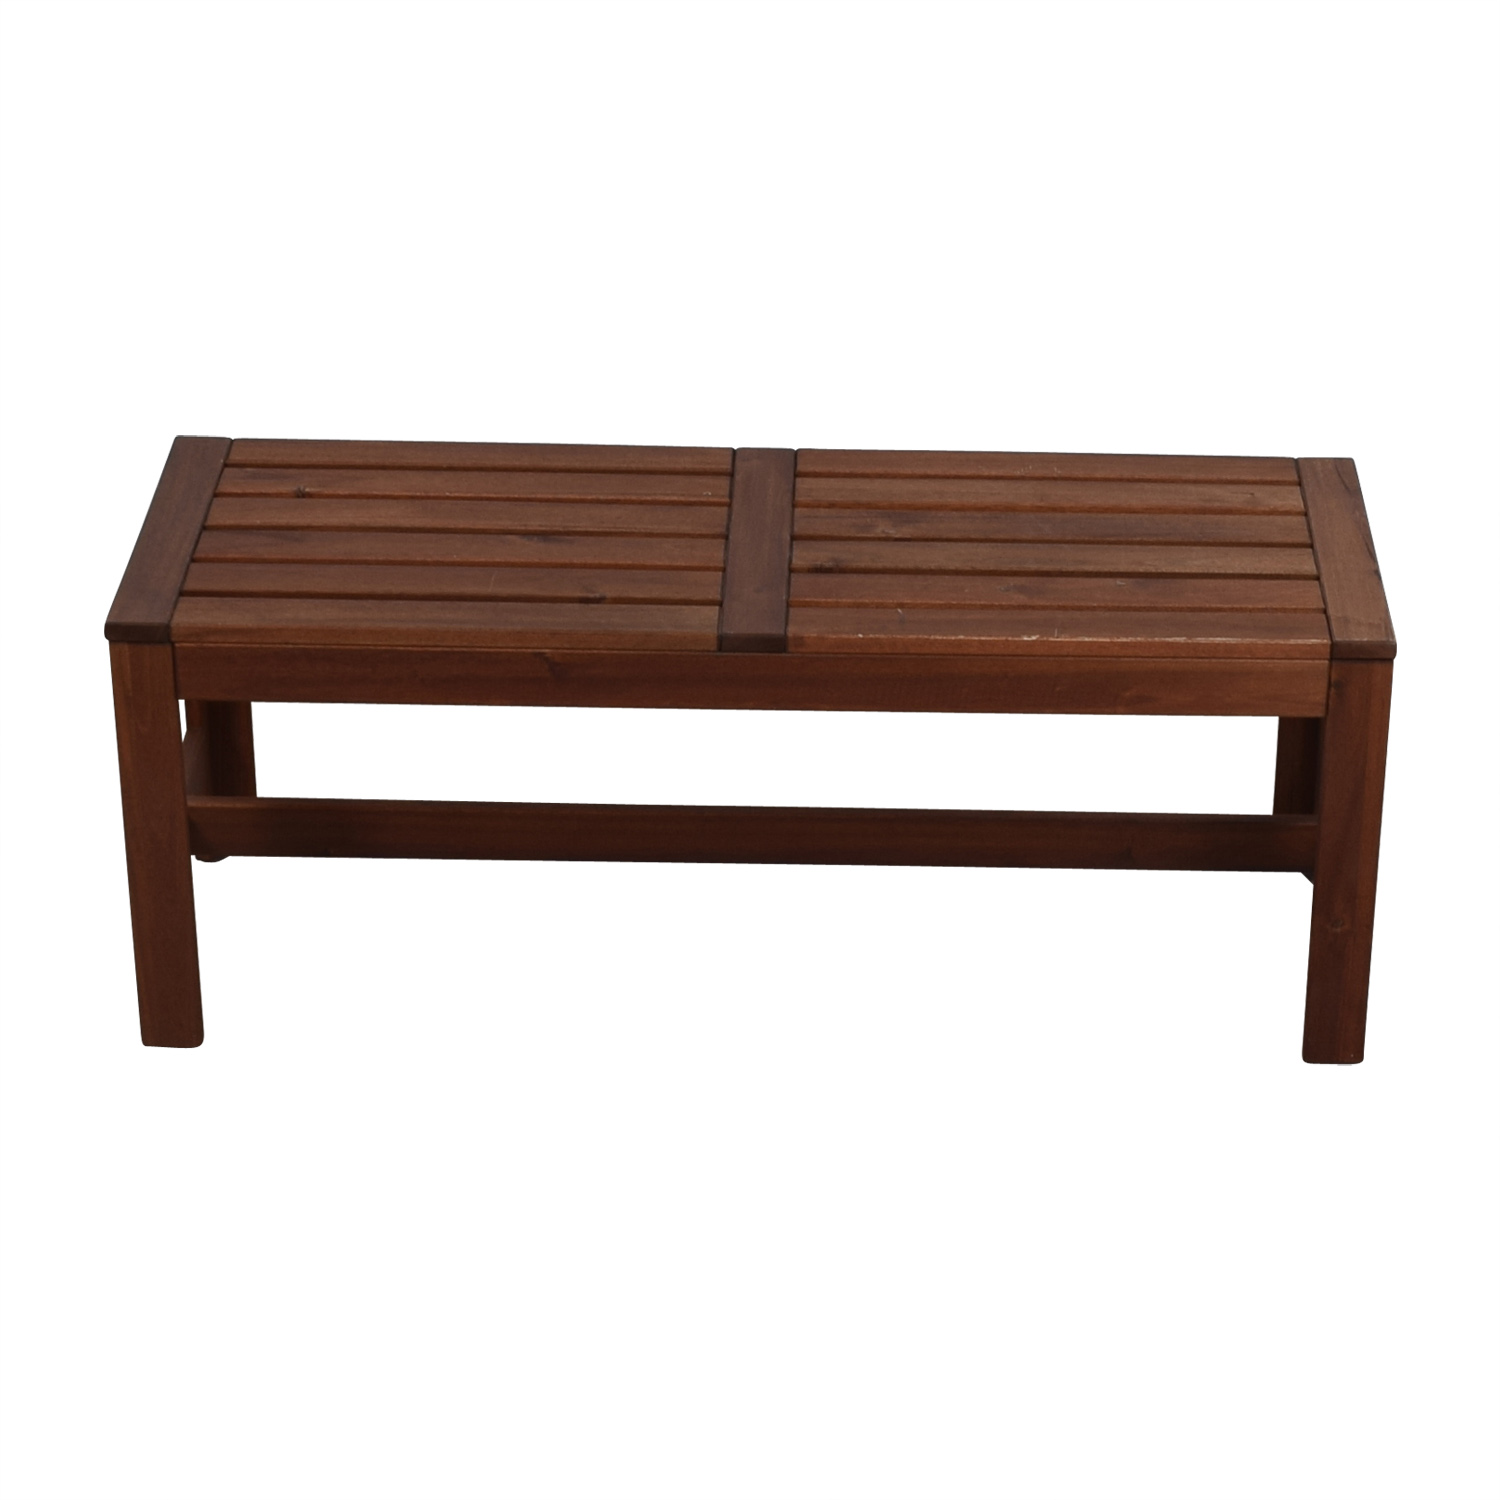 Downtown Furniture Downtown Furniture Wooden Bench Chairs